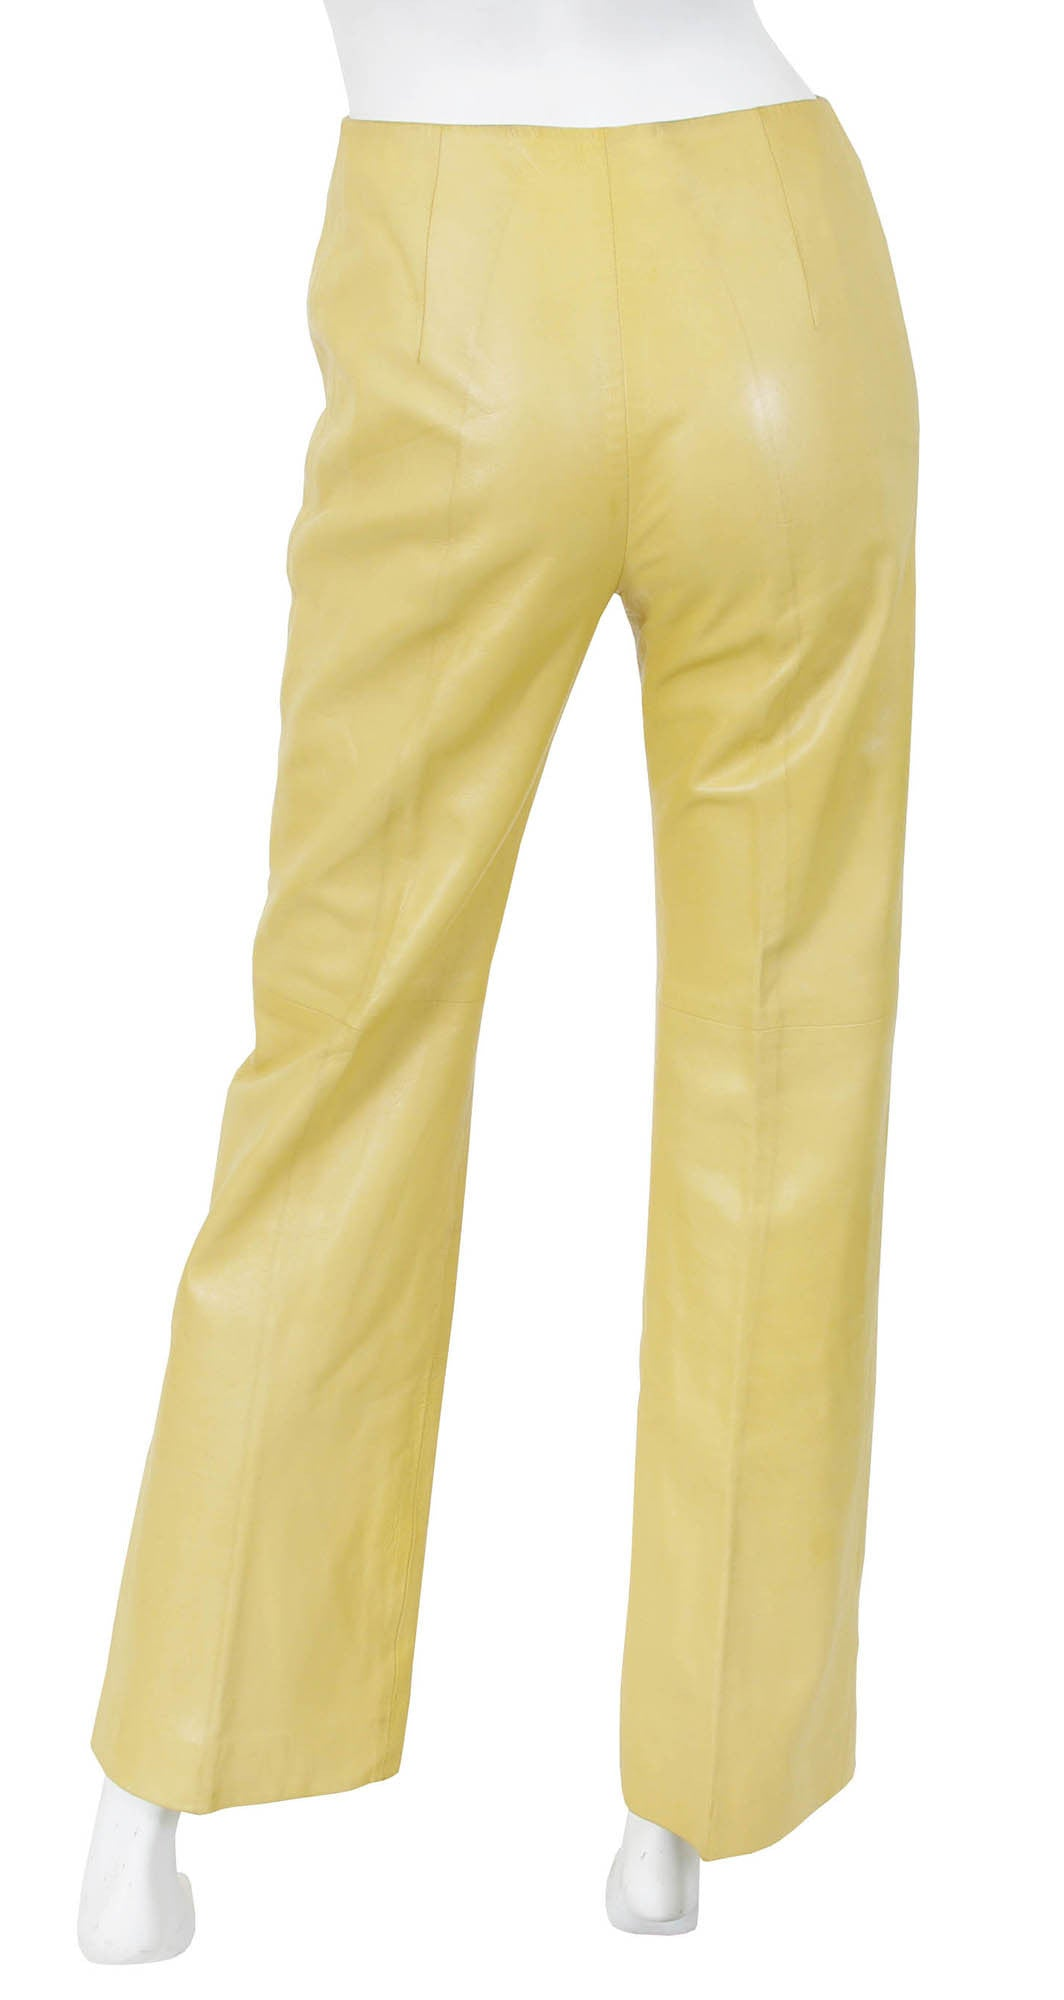 1970s Rare Butter Soft Leather Pants